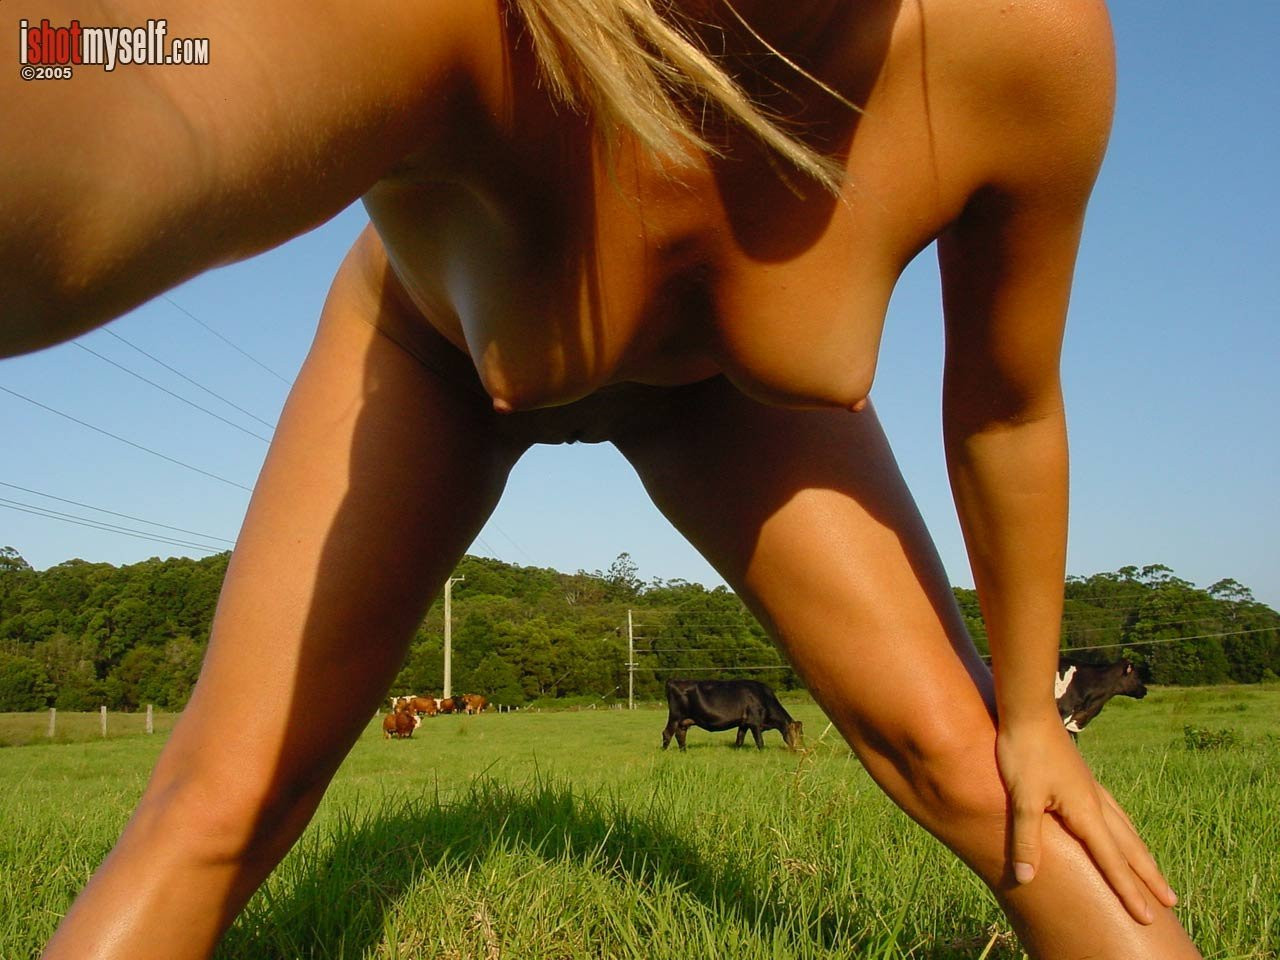 Hermione-Way-Naked-063---TheFappening.nu84c96f1529a25db4.jpg